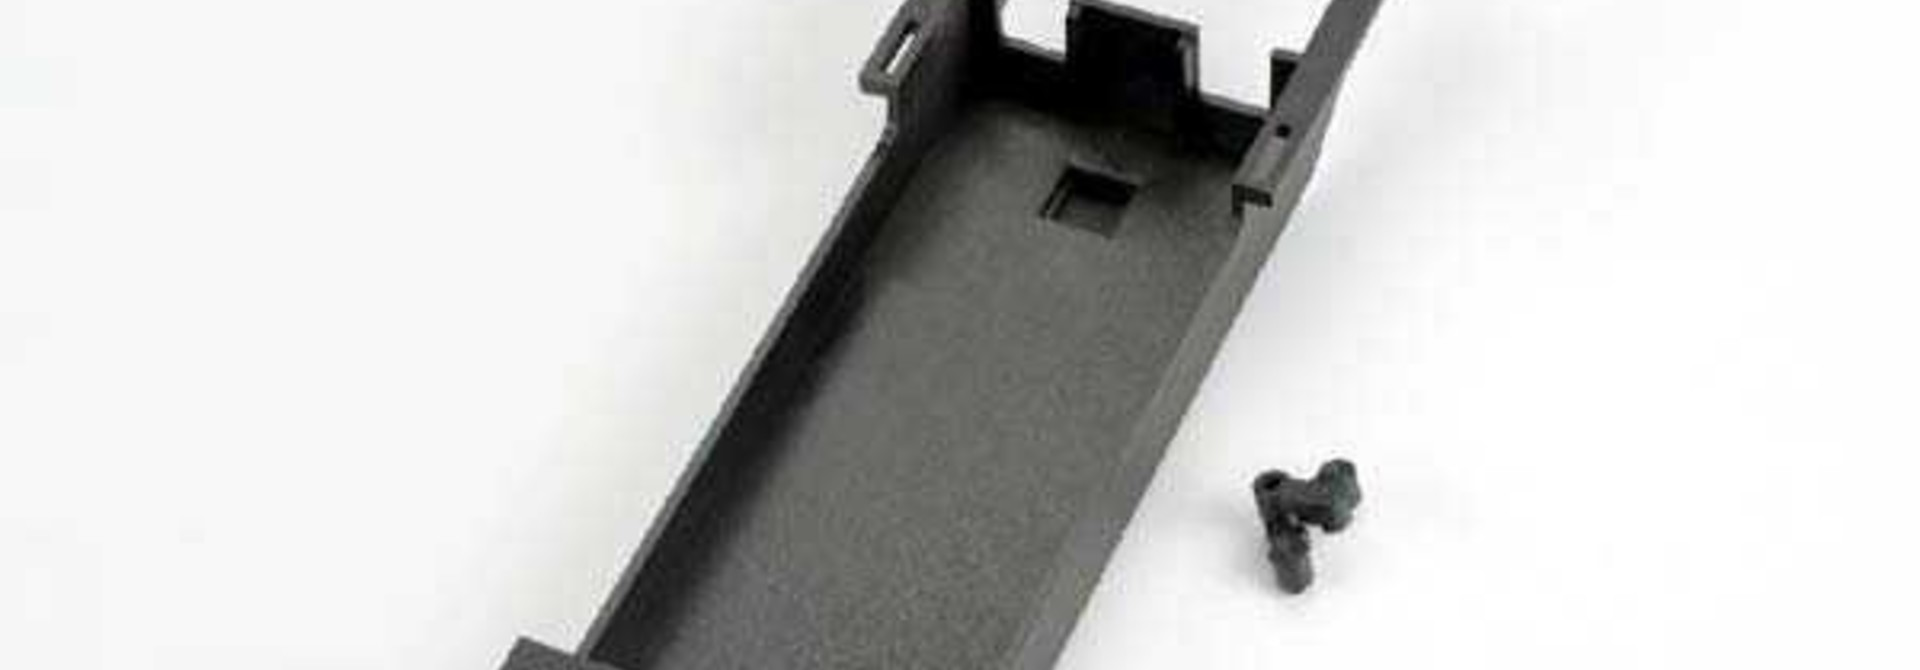 Battery compartment, TRX3821